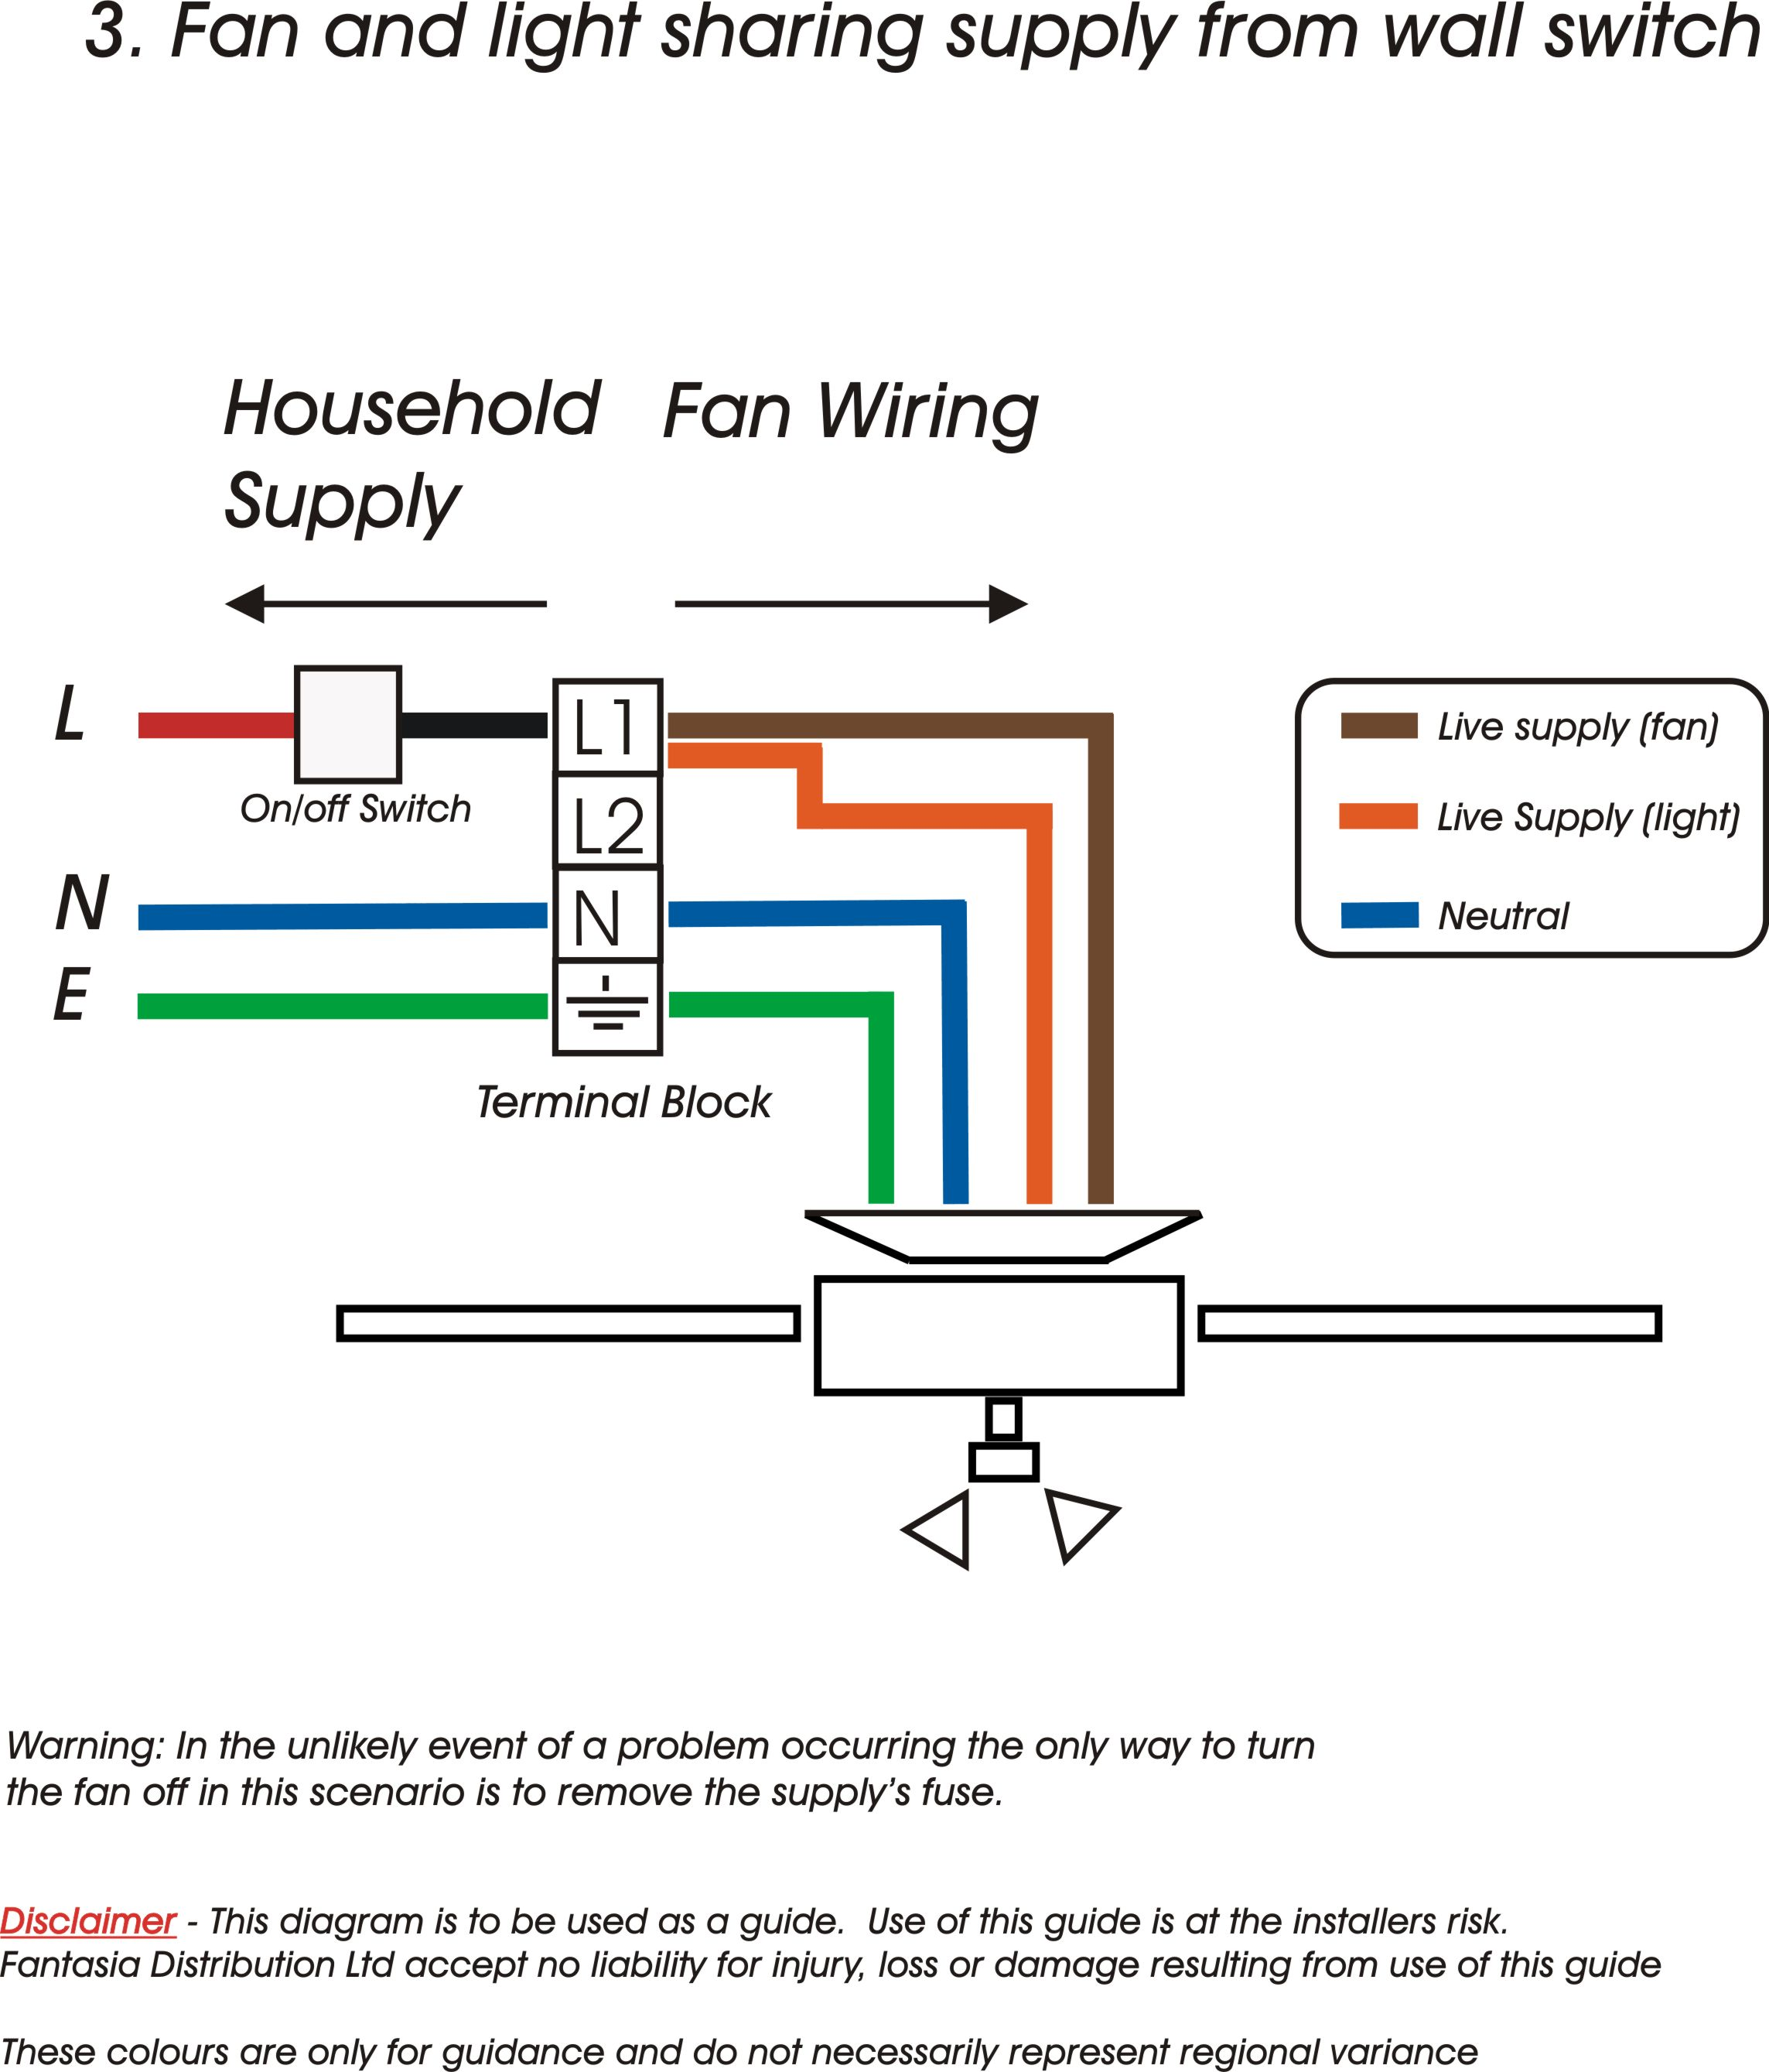 how to wire a wall switch to a light 10 fan capacitor wiring diagram roslonek net,Home Capacitor Wiring